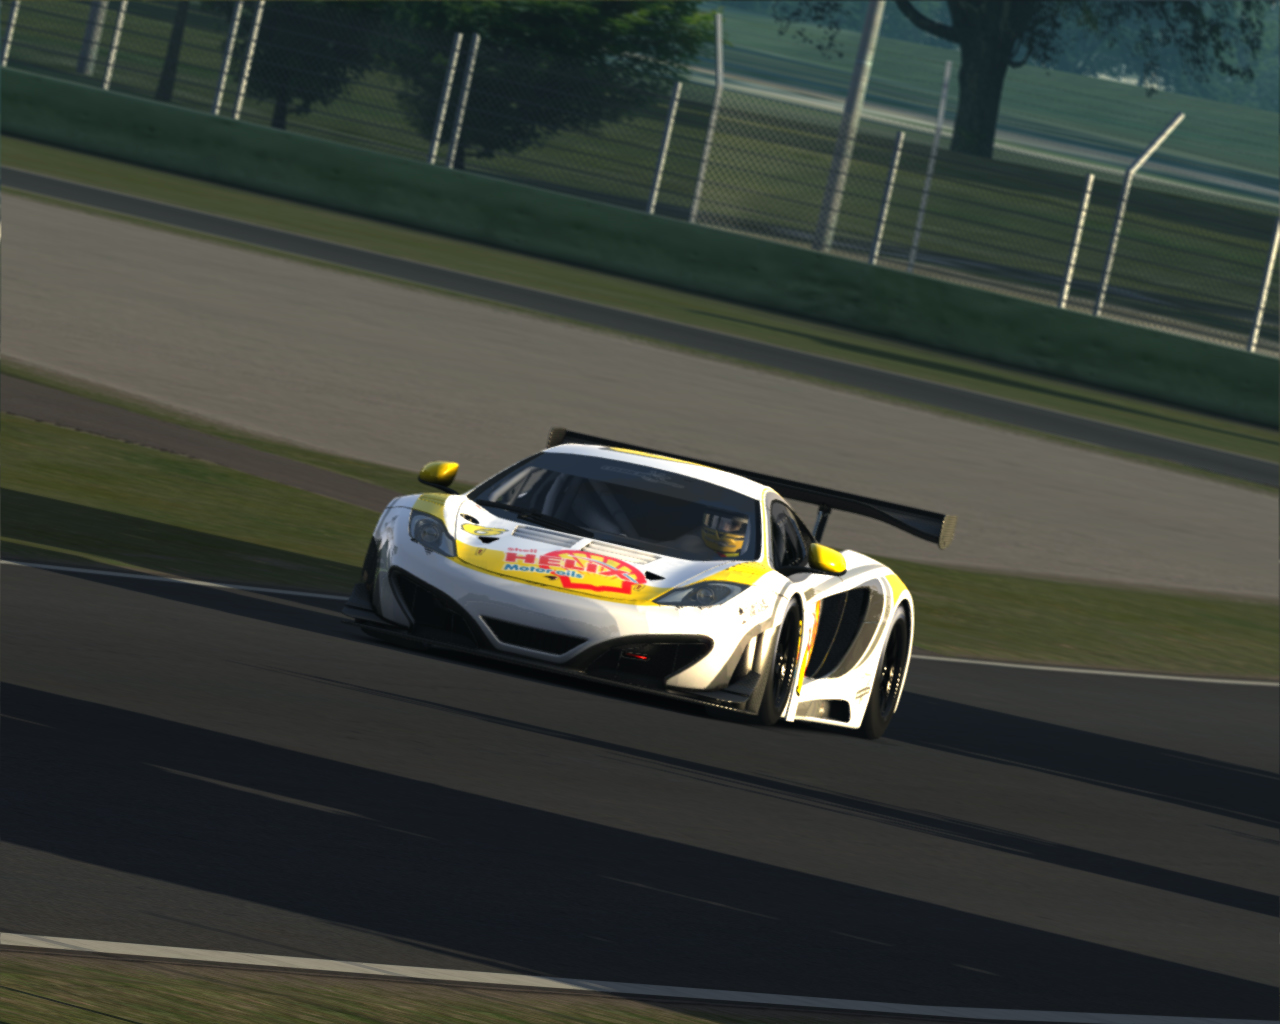 Screenshot_mclaren_mp412c_gt3_imola_5-7-2014-10-30-33.jpg